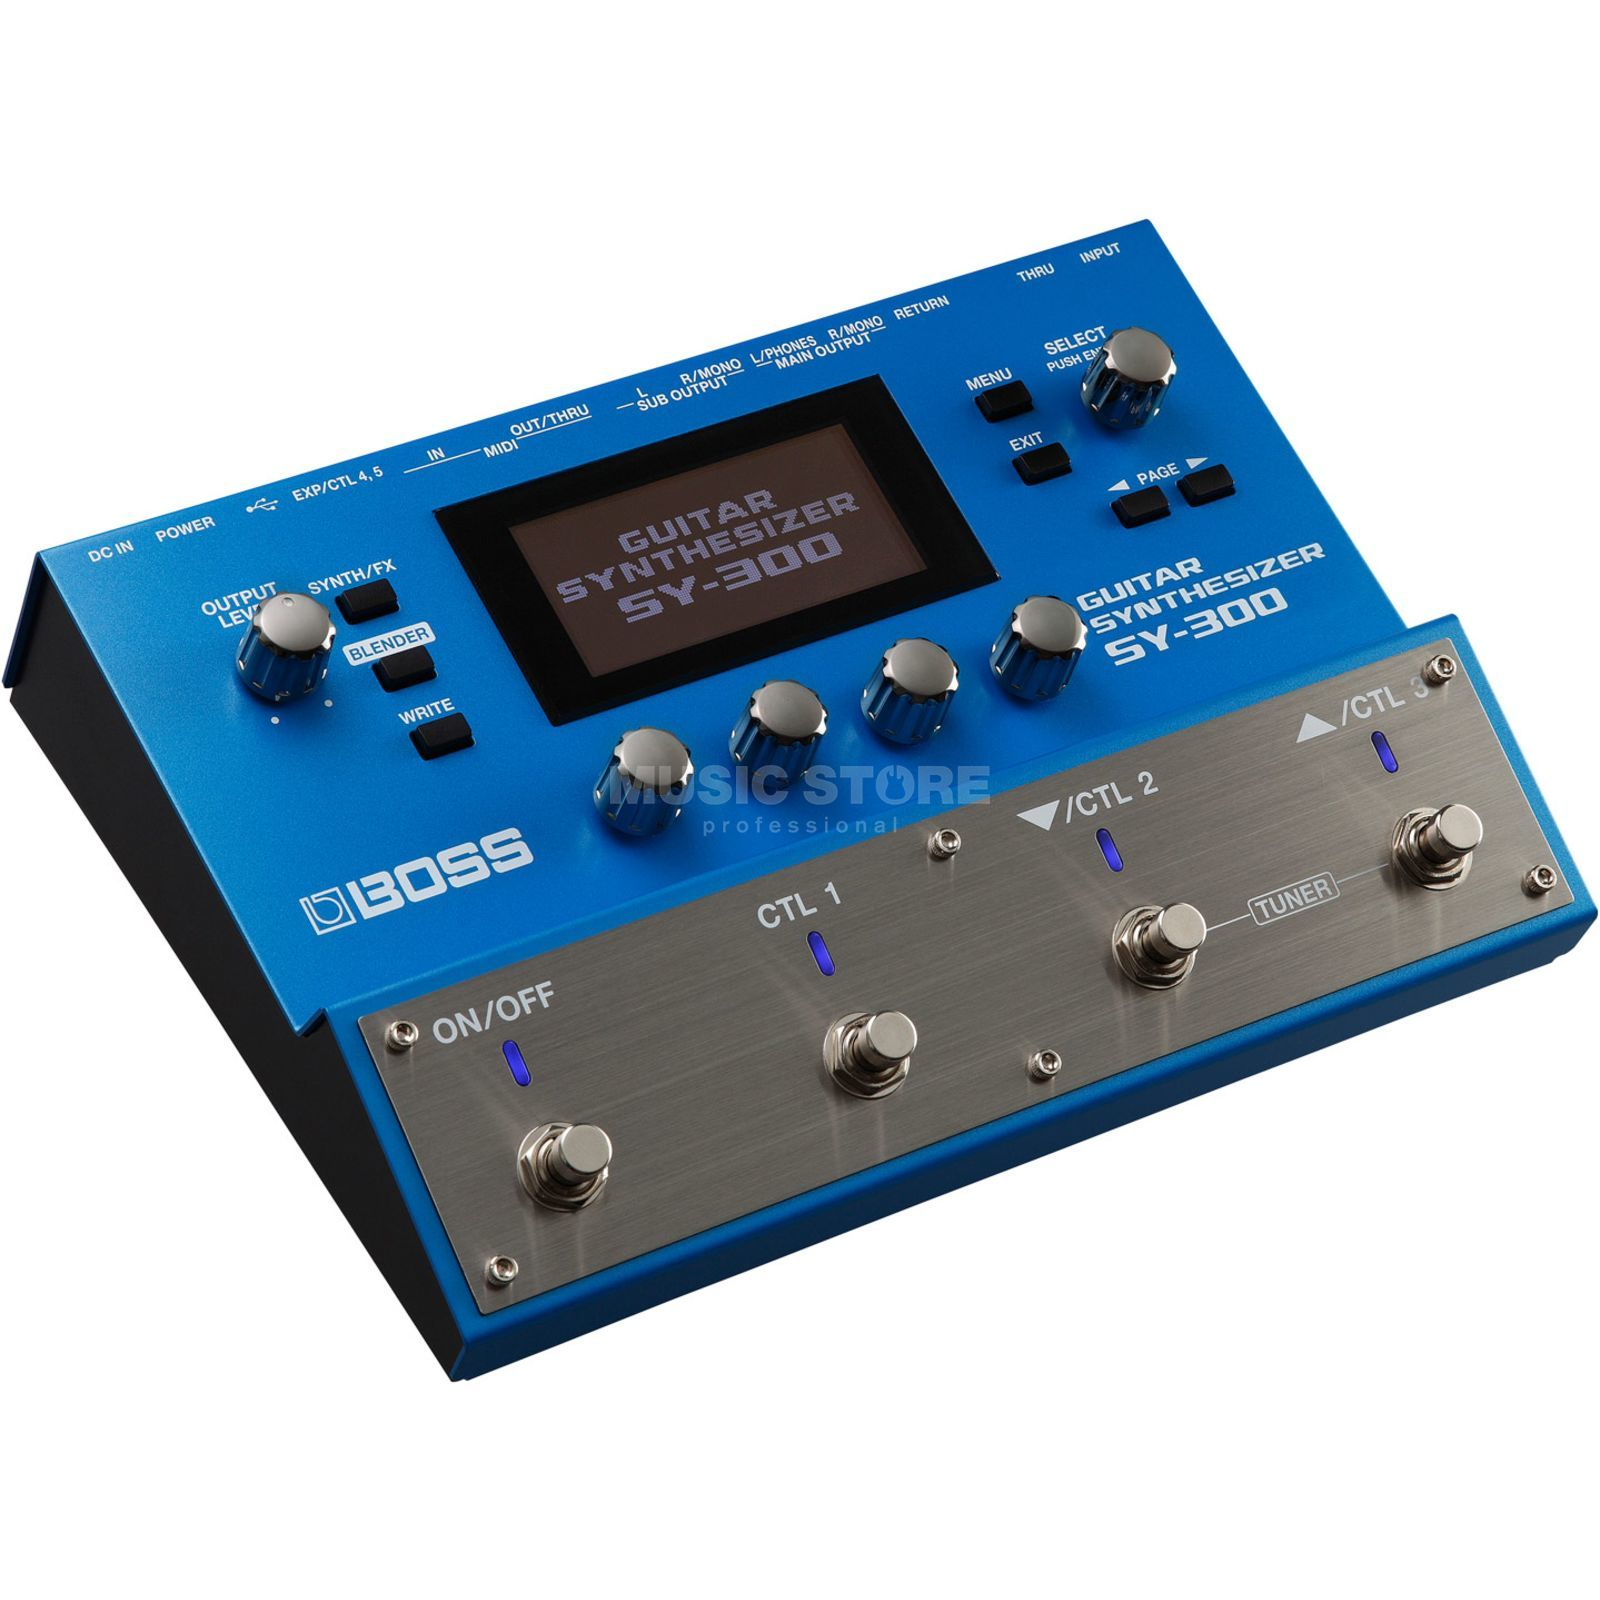 Boss SY-300 Guitar Synthesizer Product Image